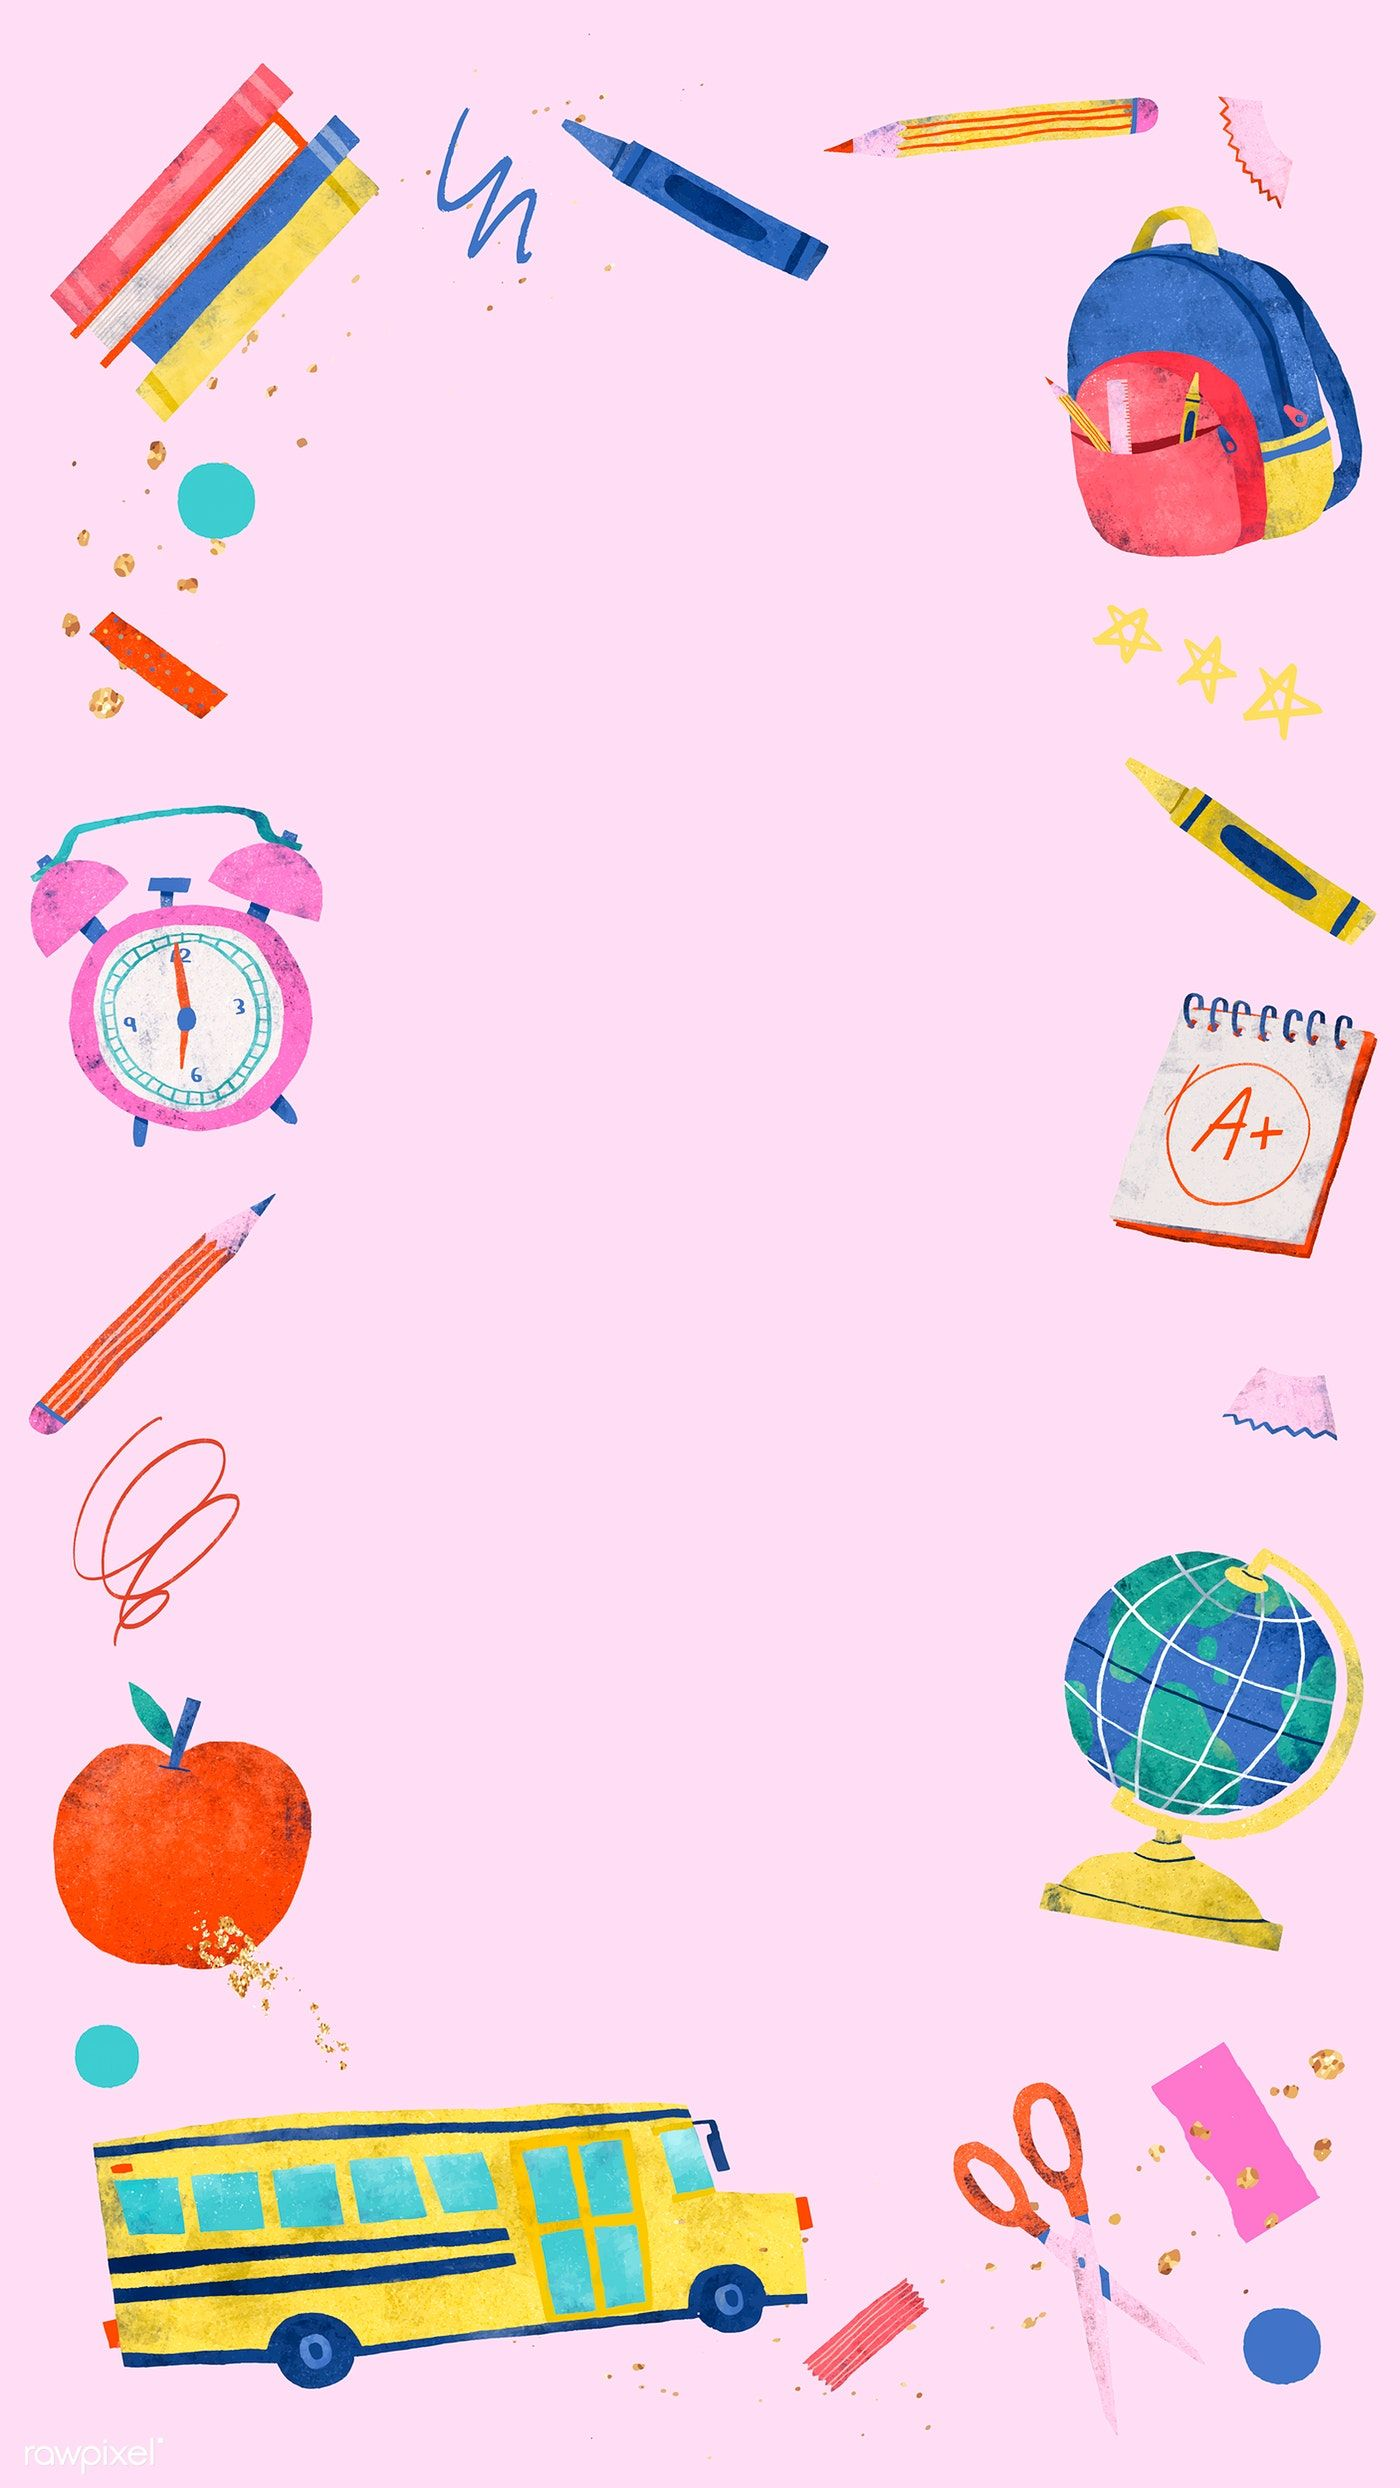 Download Premium Vector Of Blank Pink Back To School Mobile Phone Teacher Wallpaper Back To School Wallpaper Instagram Wallpaper